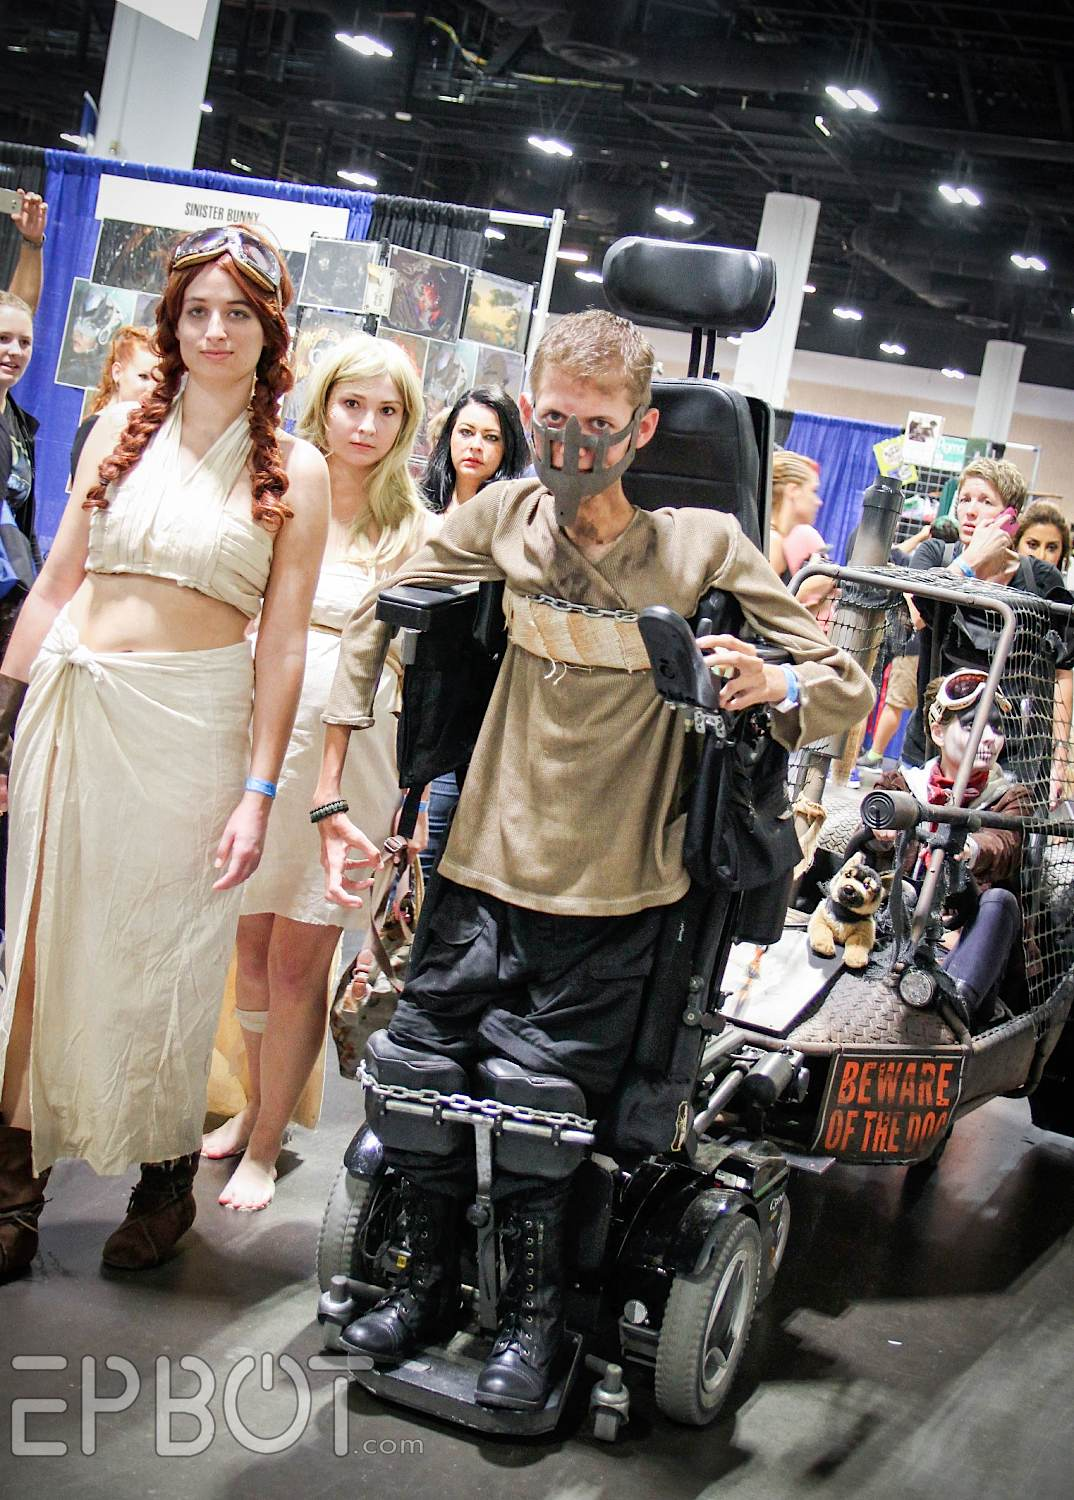 EPBOT: Tampa Bay Comic-Con 2015, Part 2